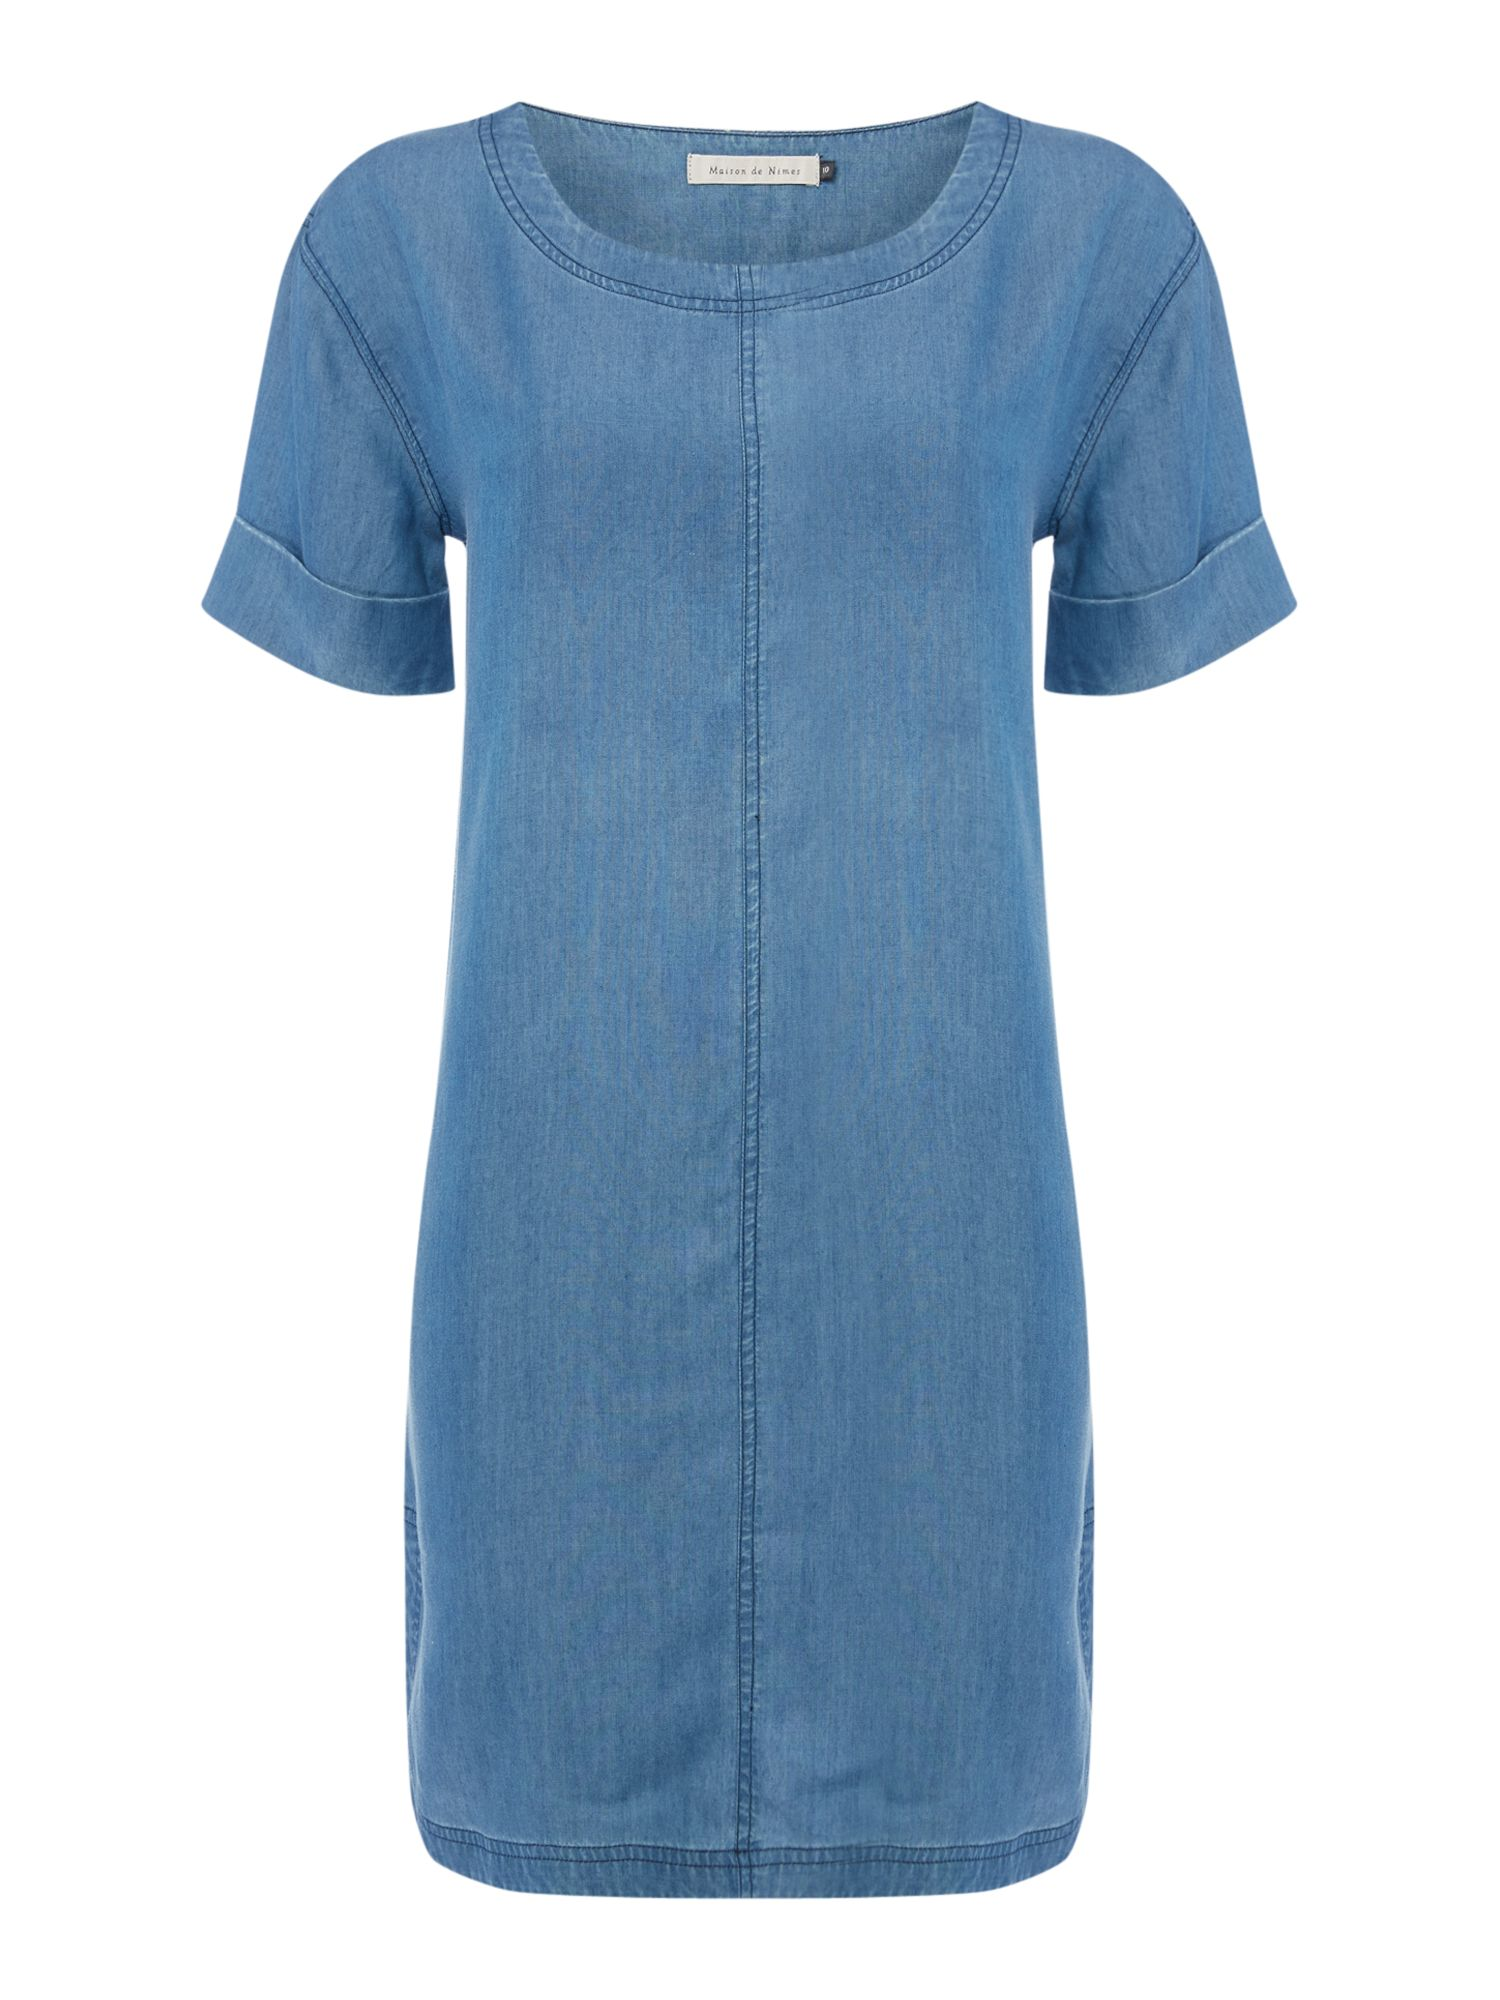 Maison De Nimes Denim t-shirt dress, Blue